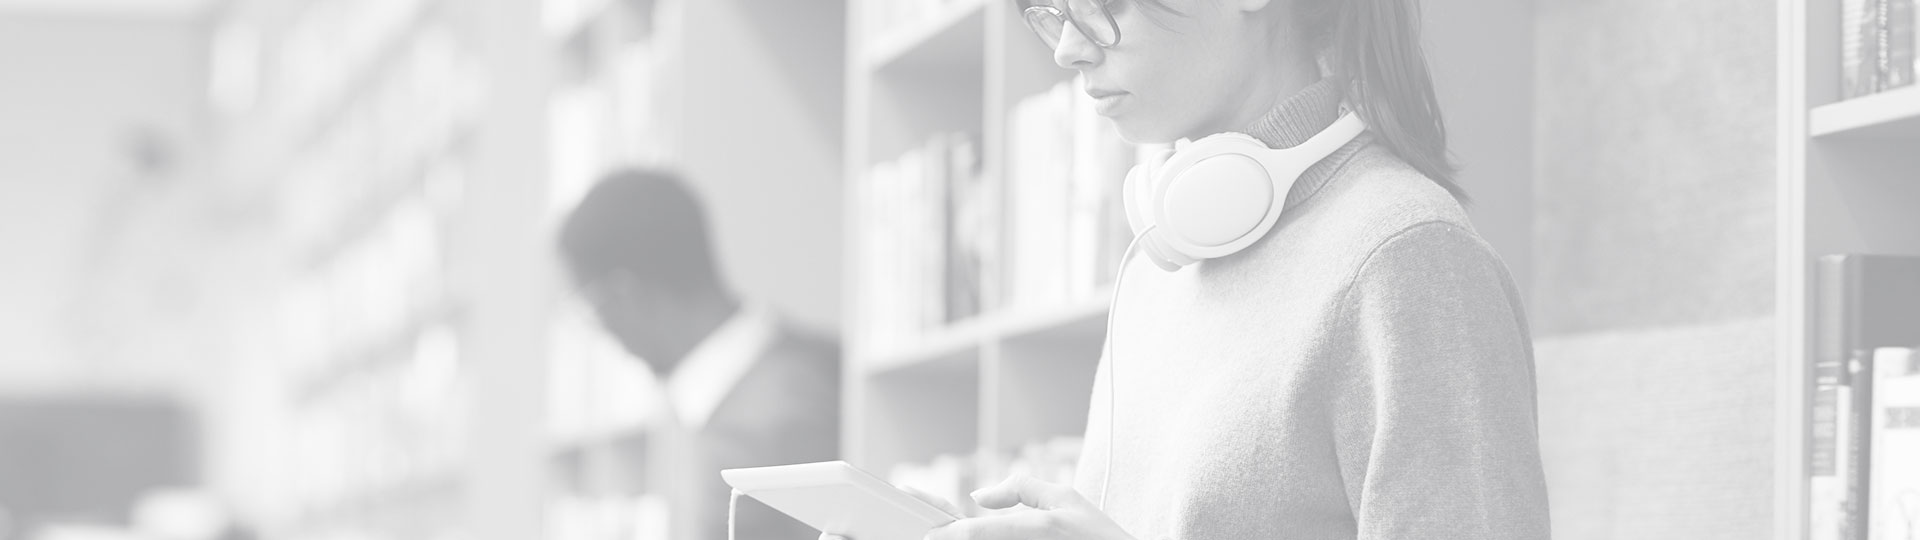 books-music-more-bg2